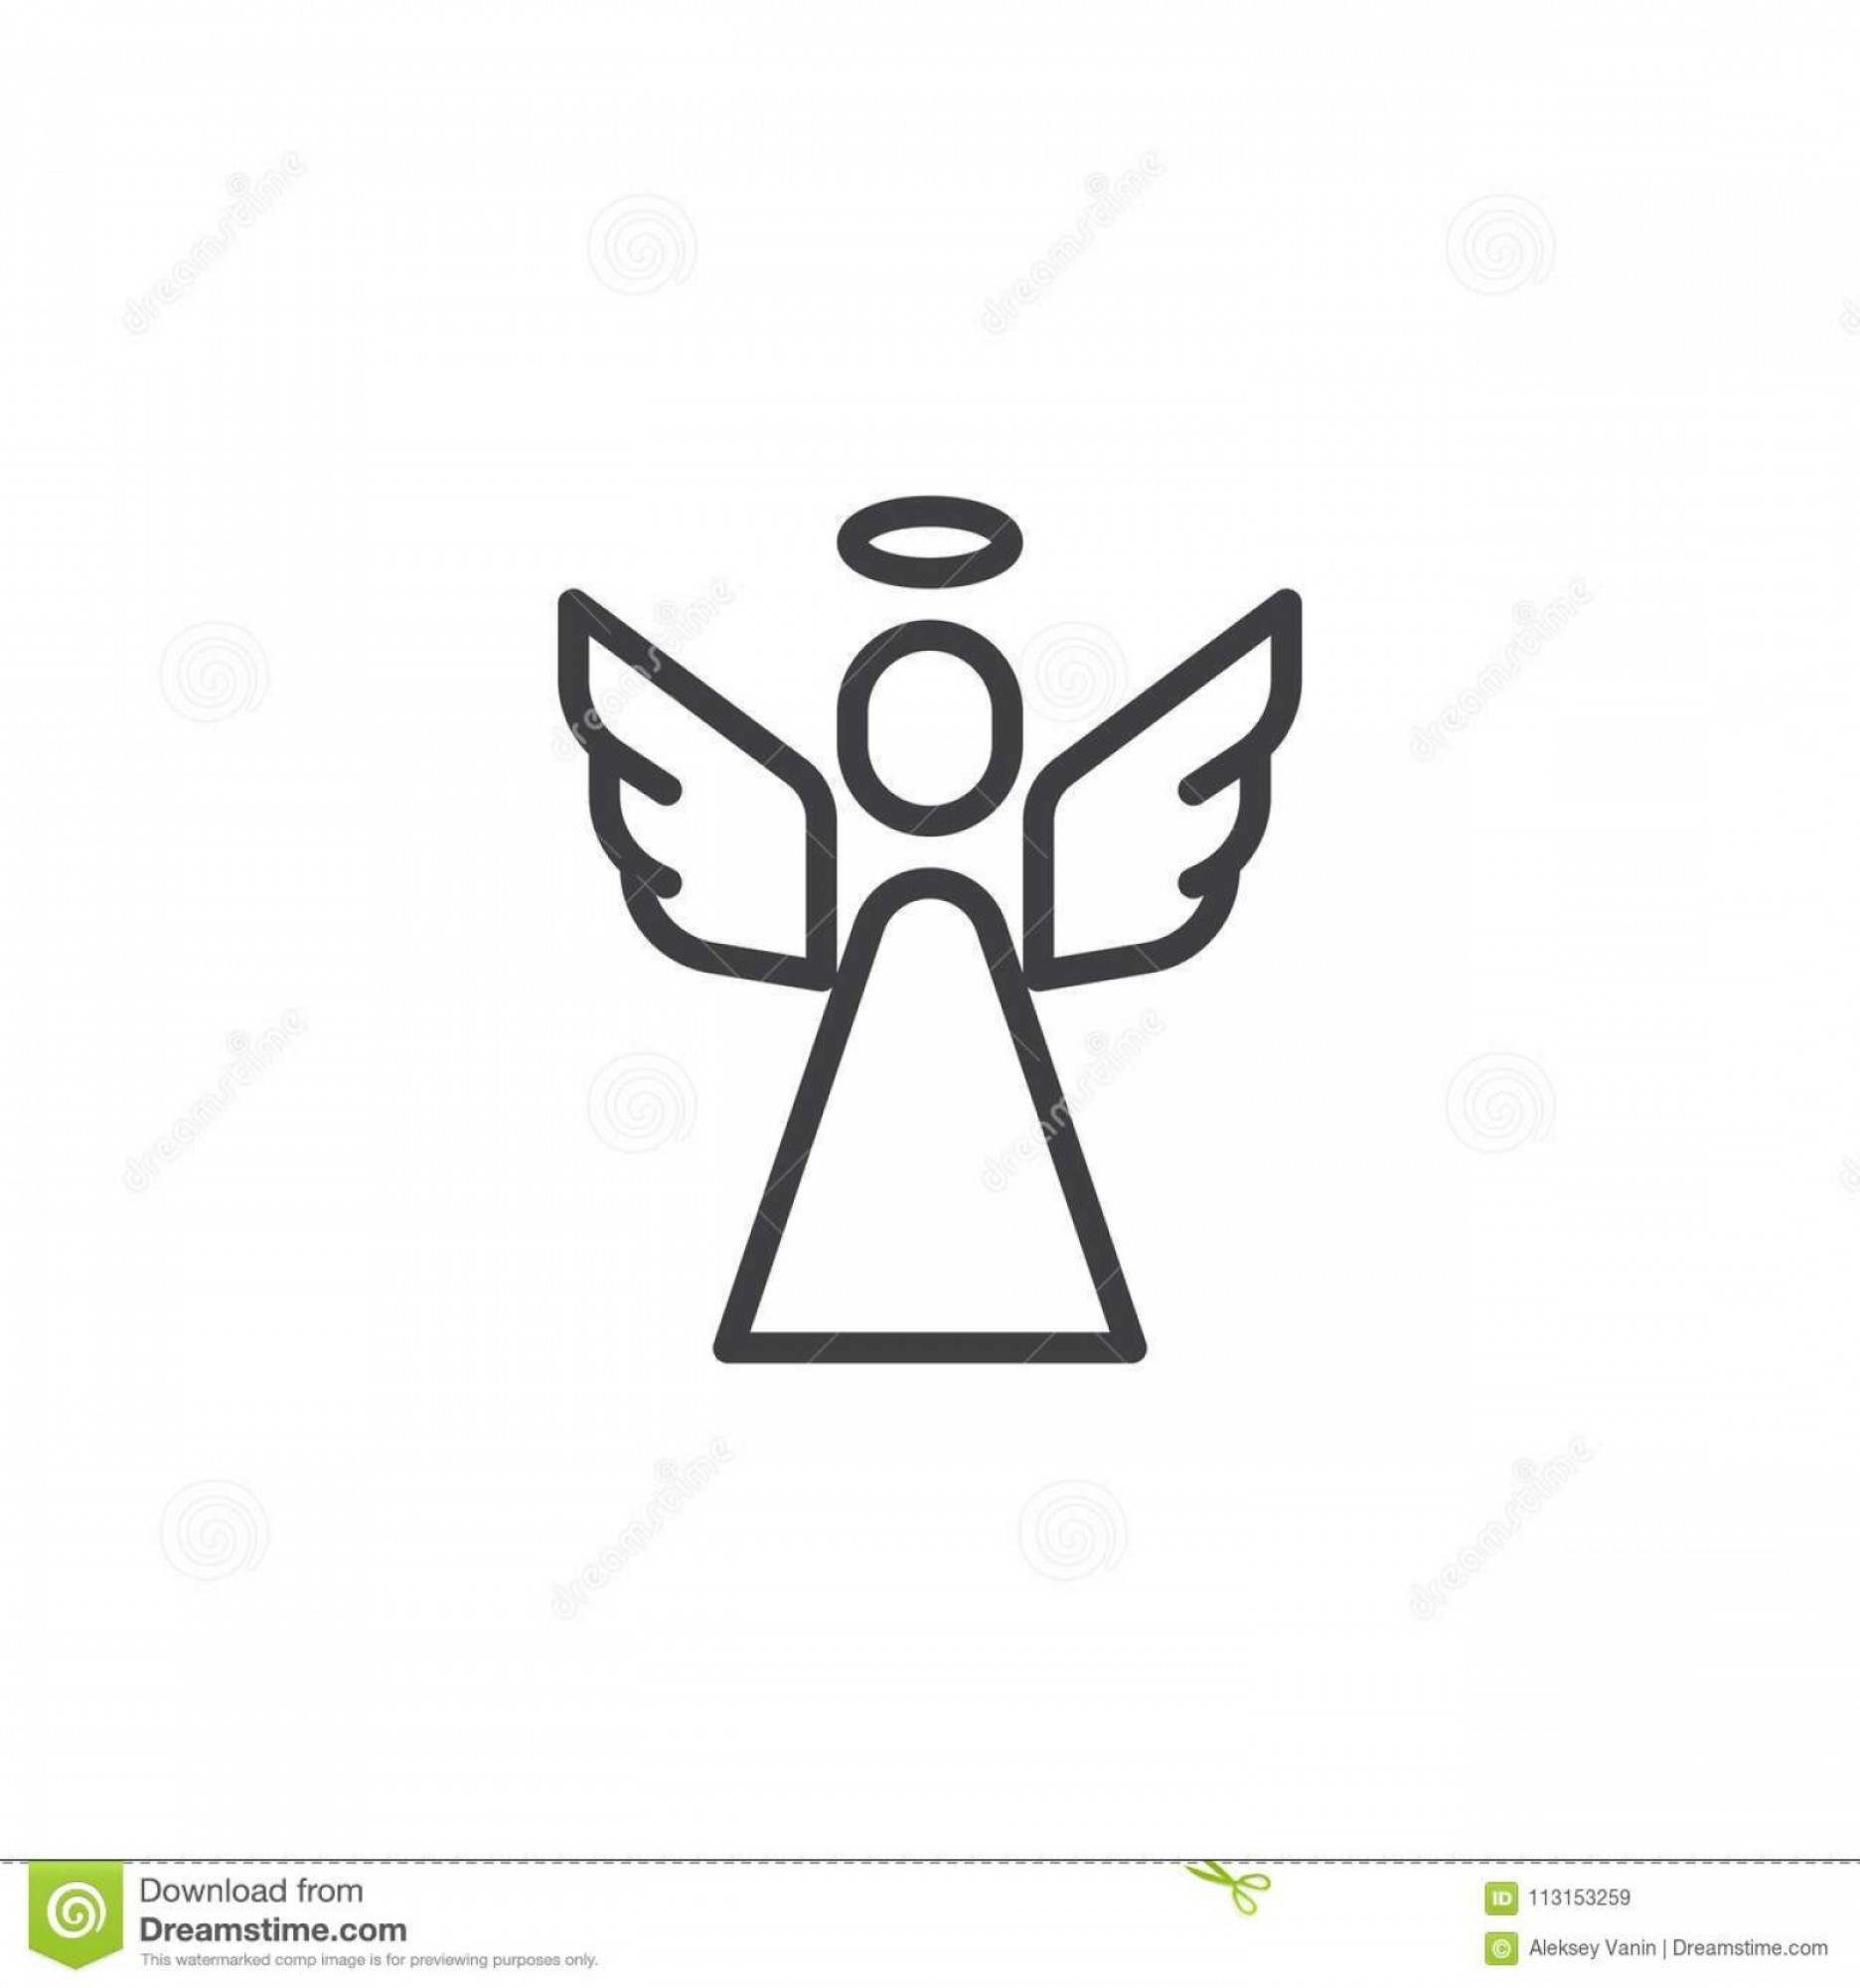 Mahi Mahi Outline Vector Images: Holy Angel Outline Icon Linear Style Sign Mobile Concept Web Design Religion Simple Line Vector Symbol Logo Illustration Image